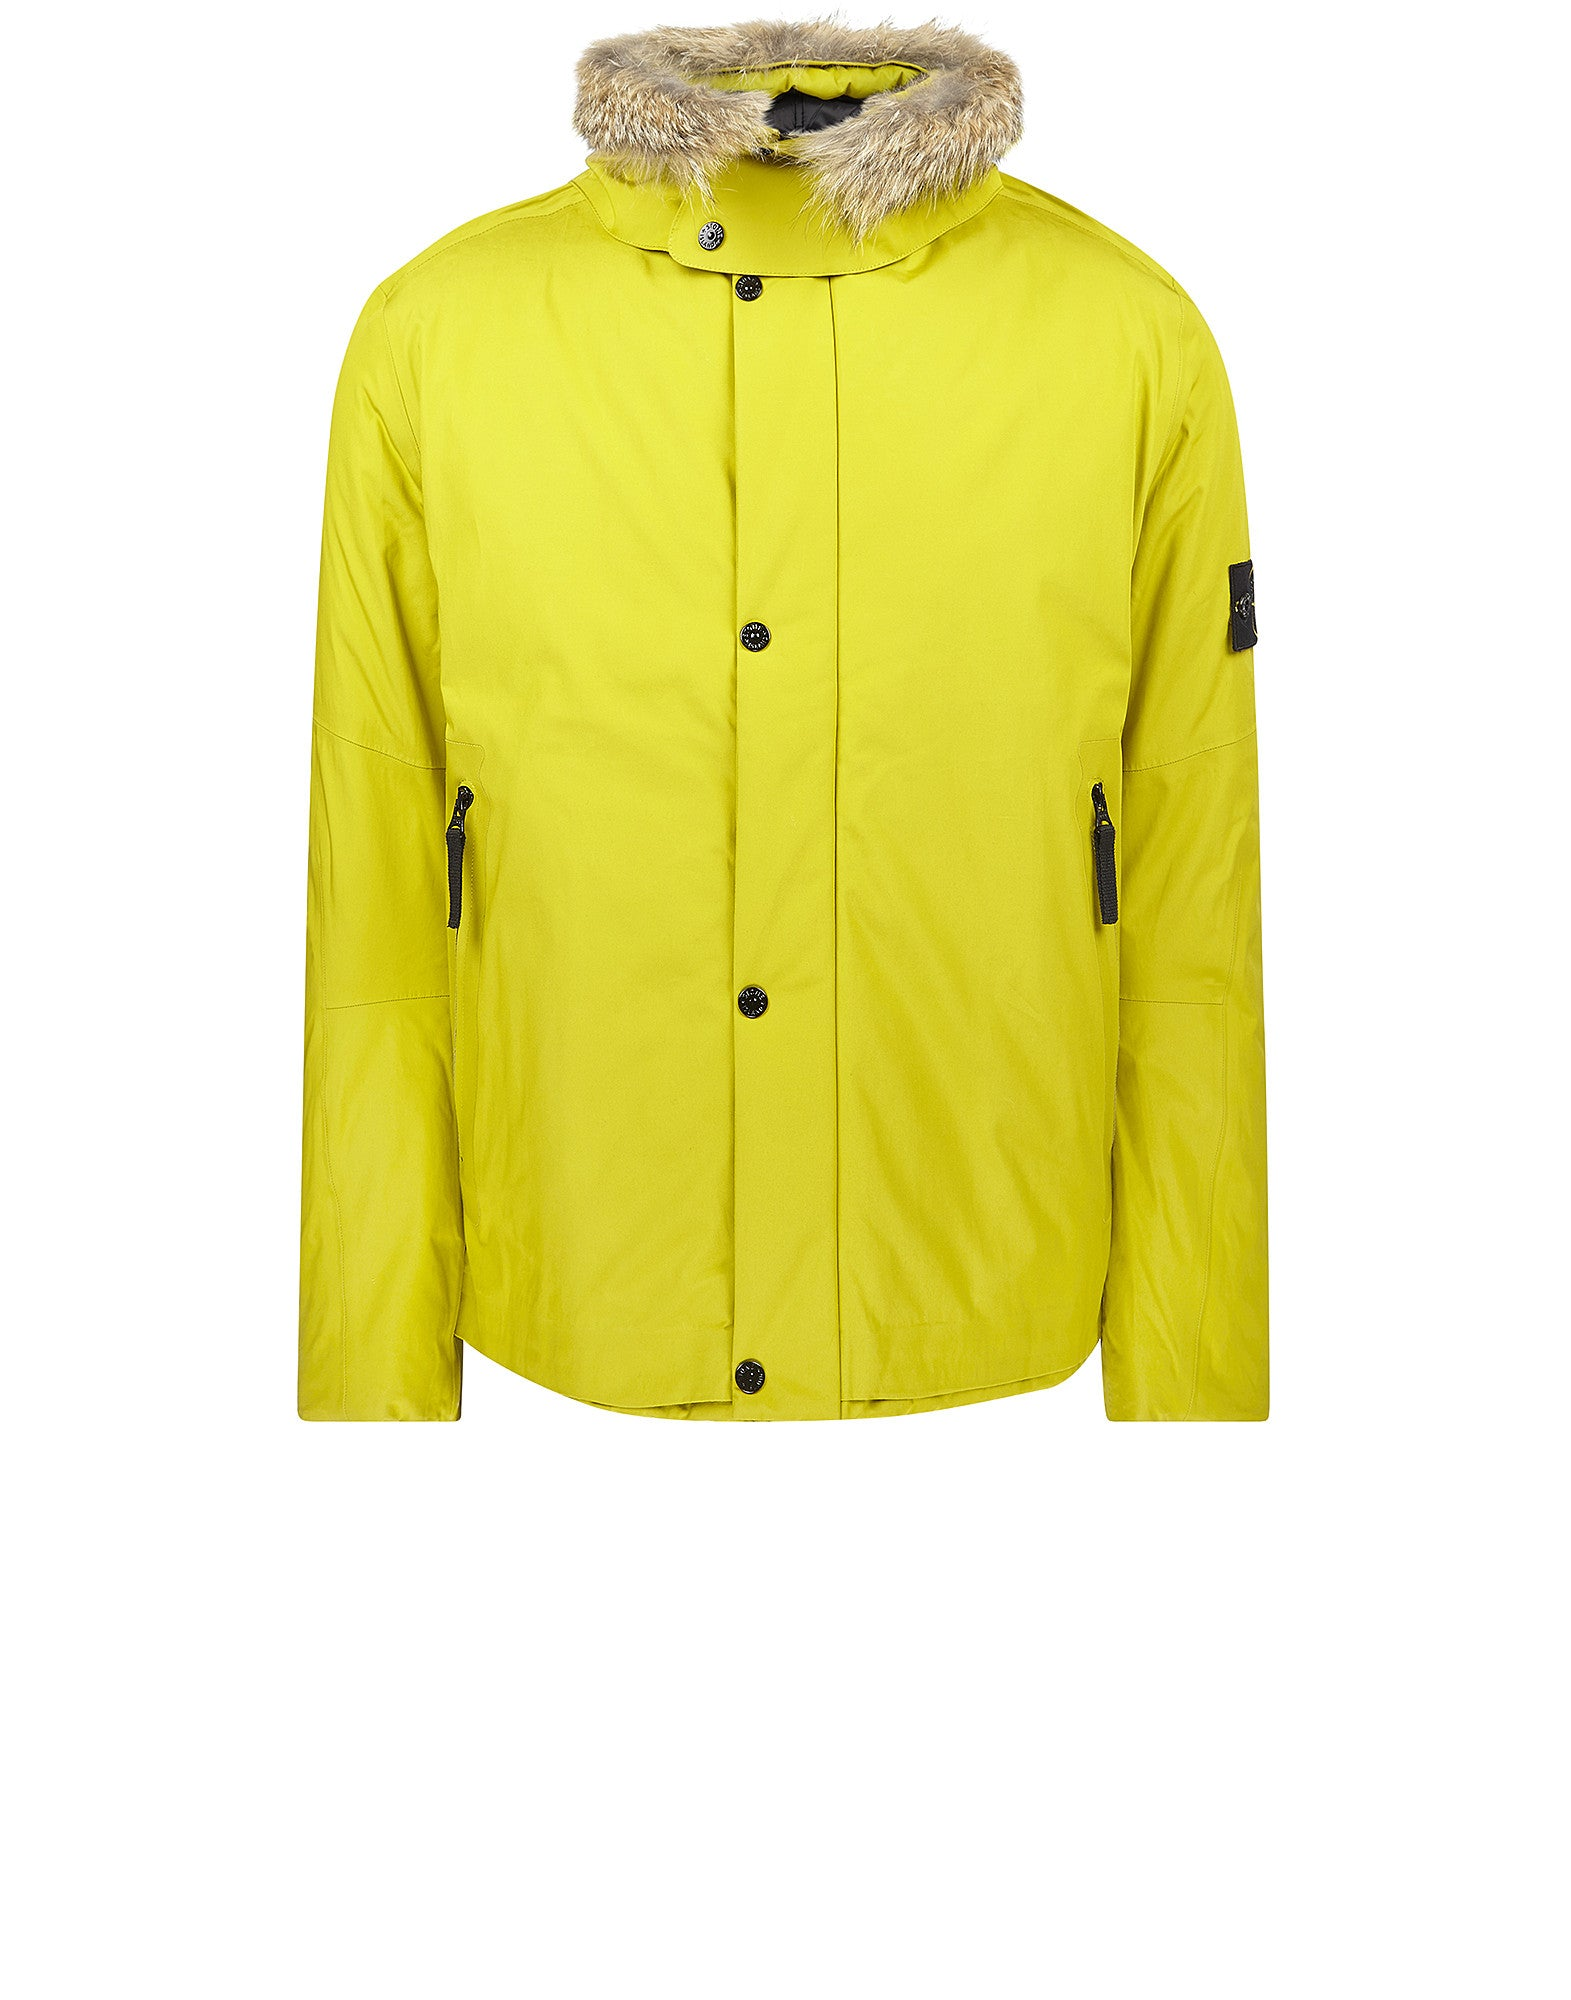 42025 WATER REPELLENT SUPIMA COTTON WITH PRIMALOFT® INSULATION TECHNOLOGY Jacket in Yellow